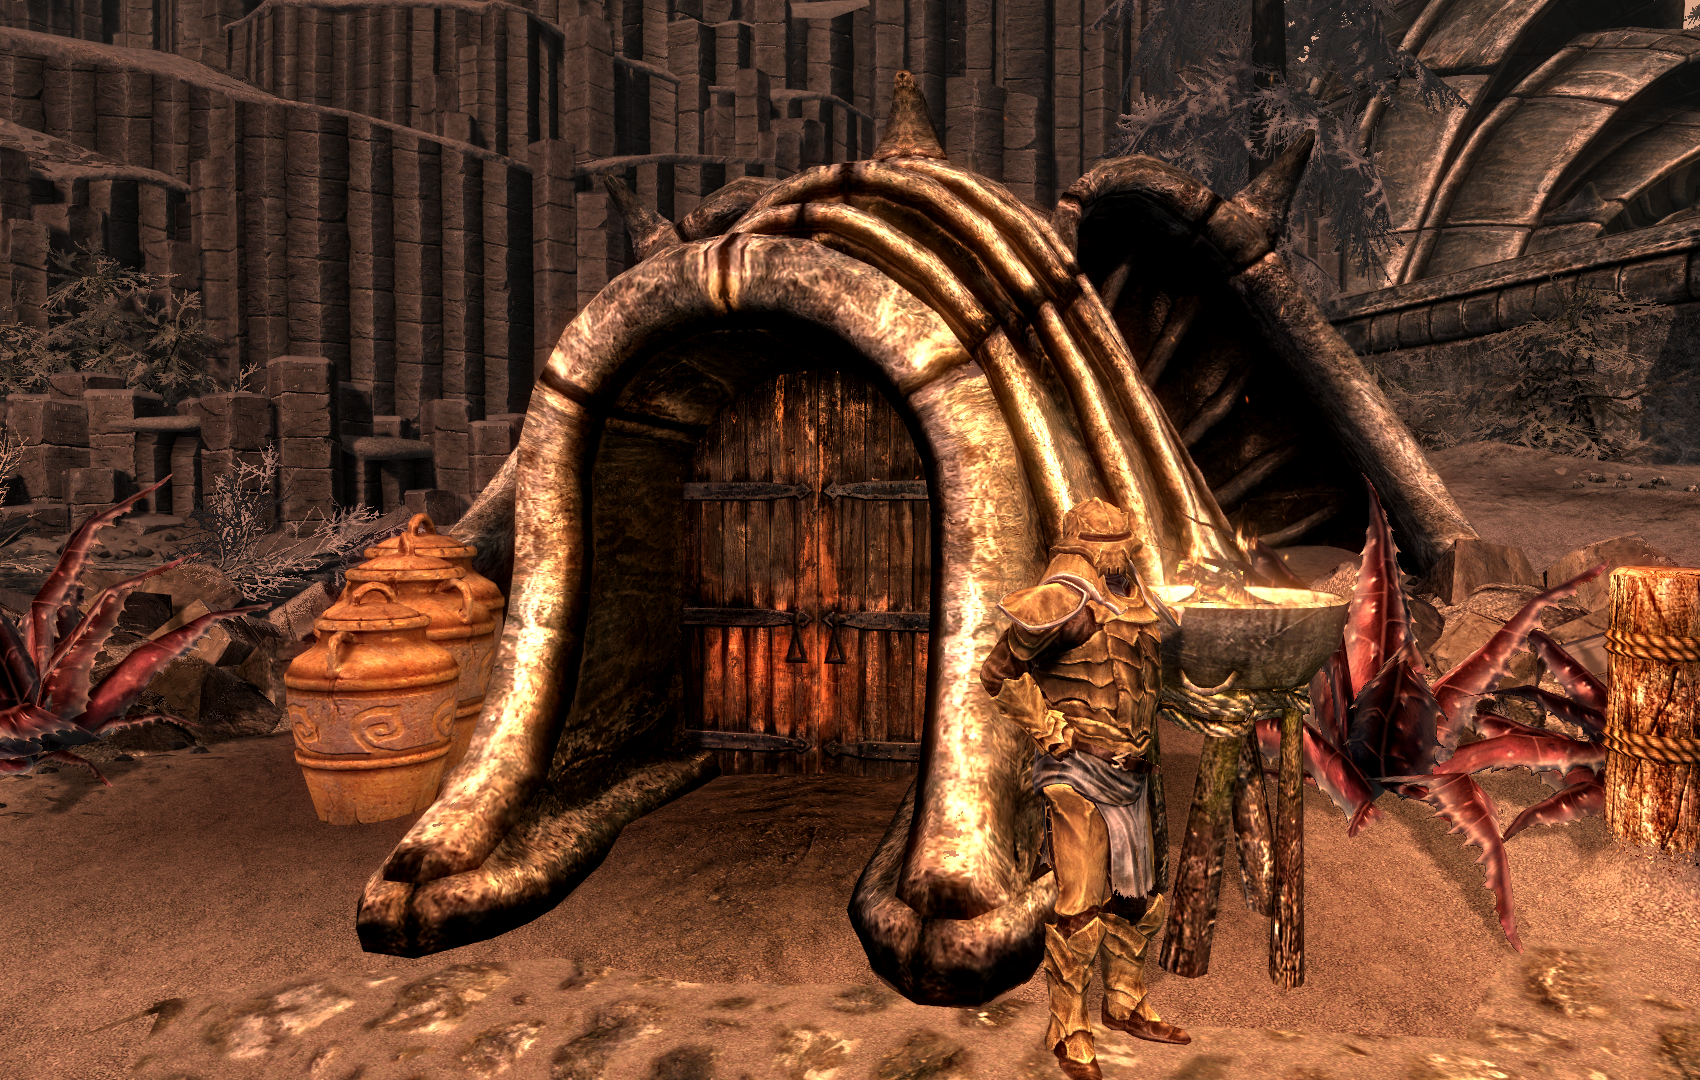 http://images.wikia.com/elderscrolls/images/c/c8/The_Retching_Netch.png